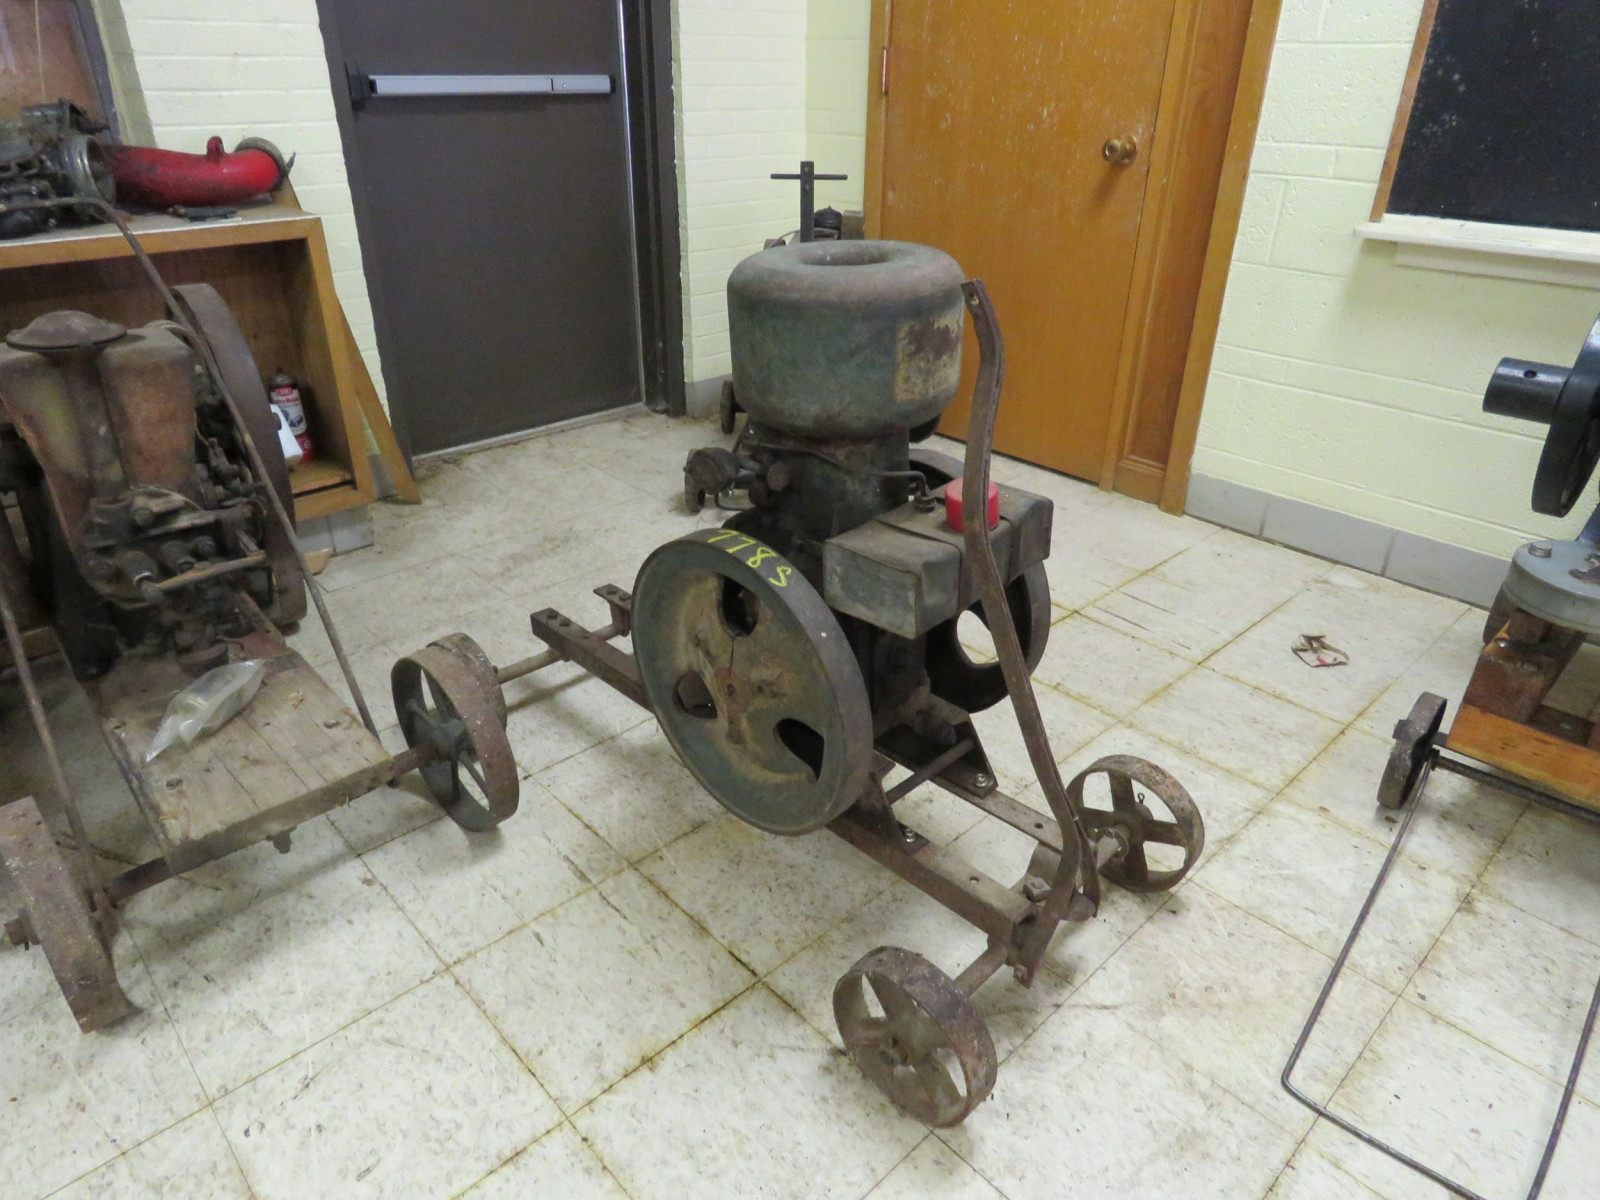 Fairbanks Morse Eclipse 4 hp Stationary Gas engine - Image 1